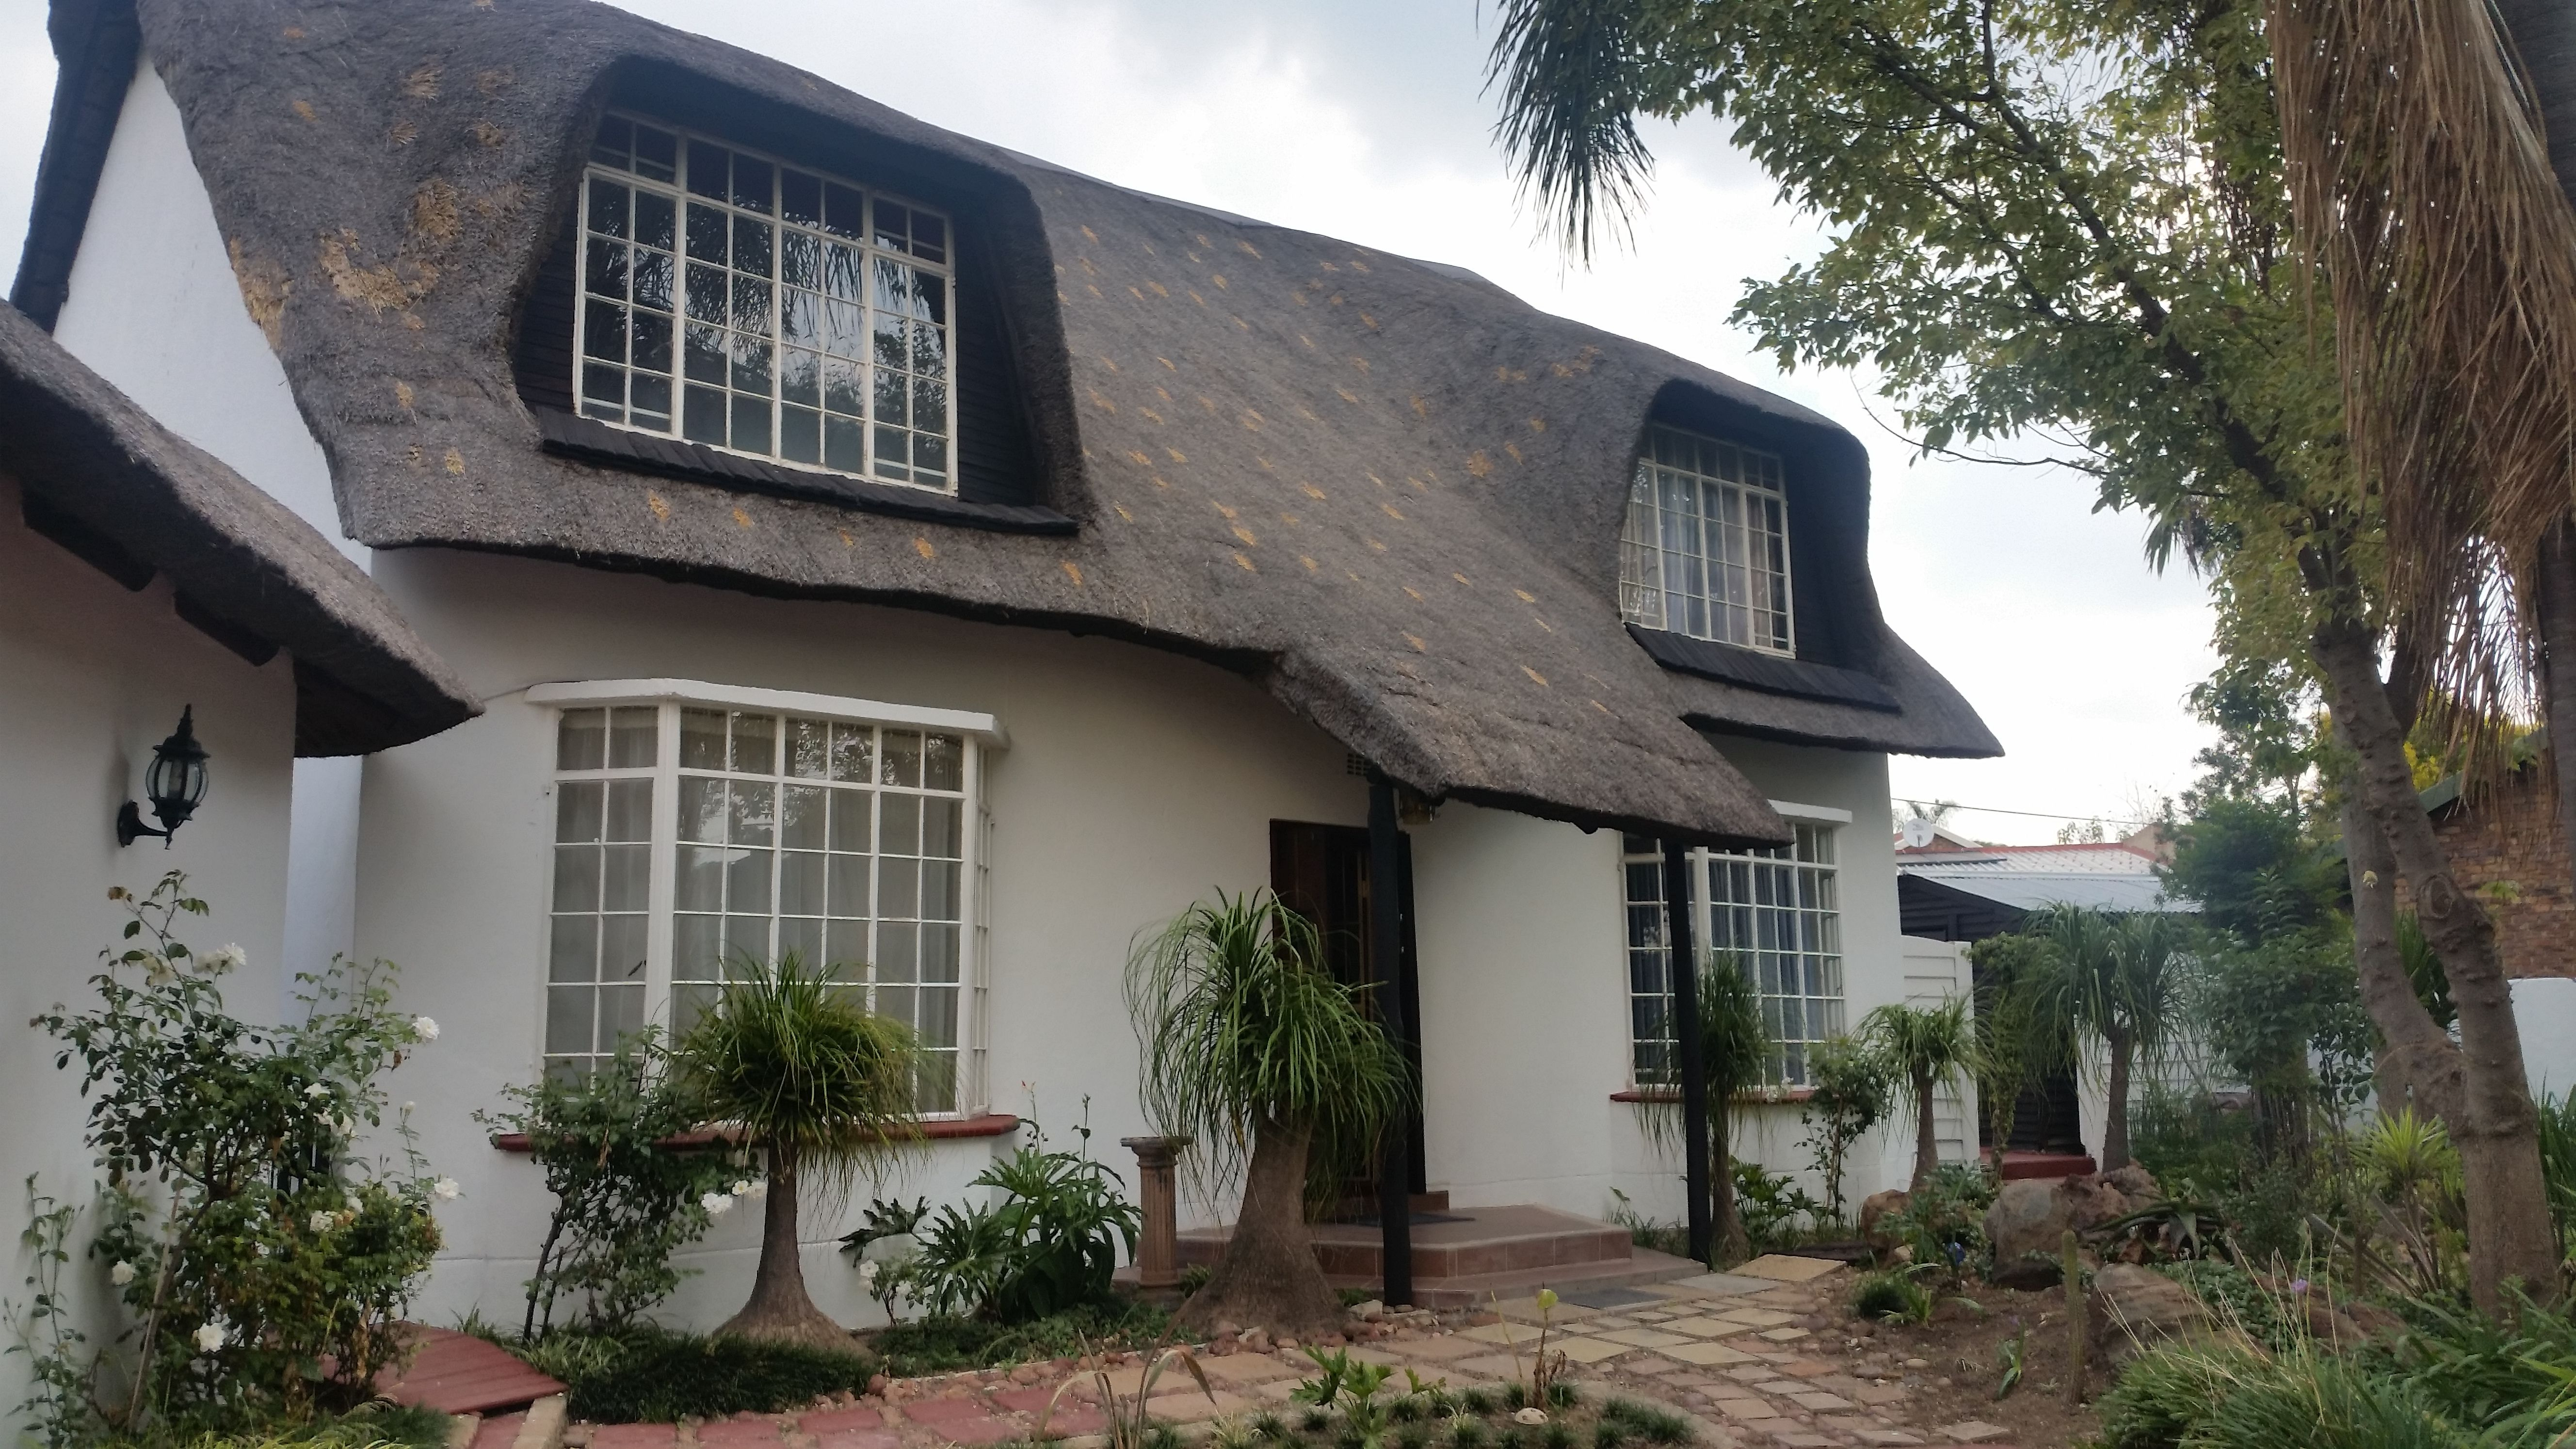 Stunning Double Storey Thatched Roof Property In Enclosed Area Beautiful Street Appeal Brand New Very Spacious Open Built In Braai Thatched Roof House Styles